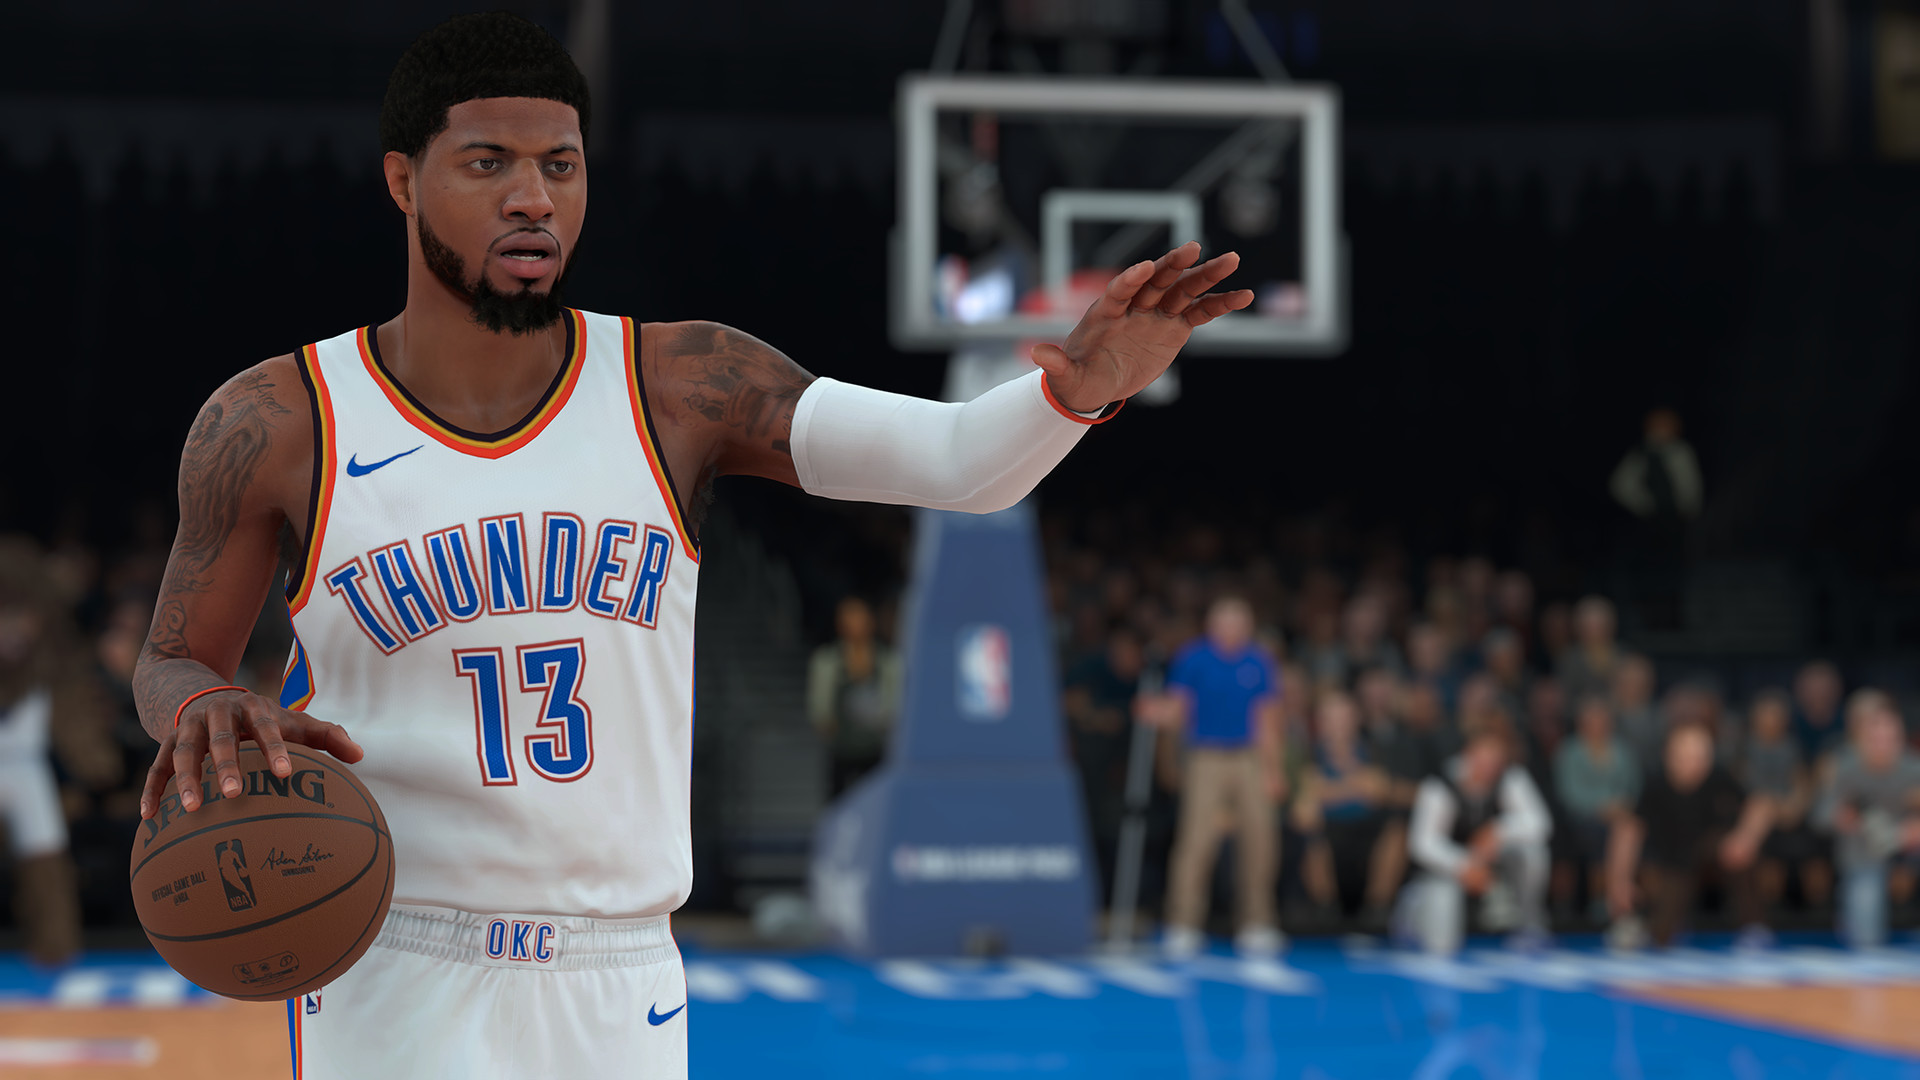 Photo of NBA 2k18 Shows Its New Gameplay Footage in this Behind The Scenes Video